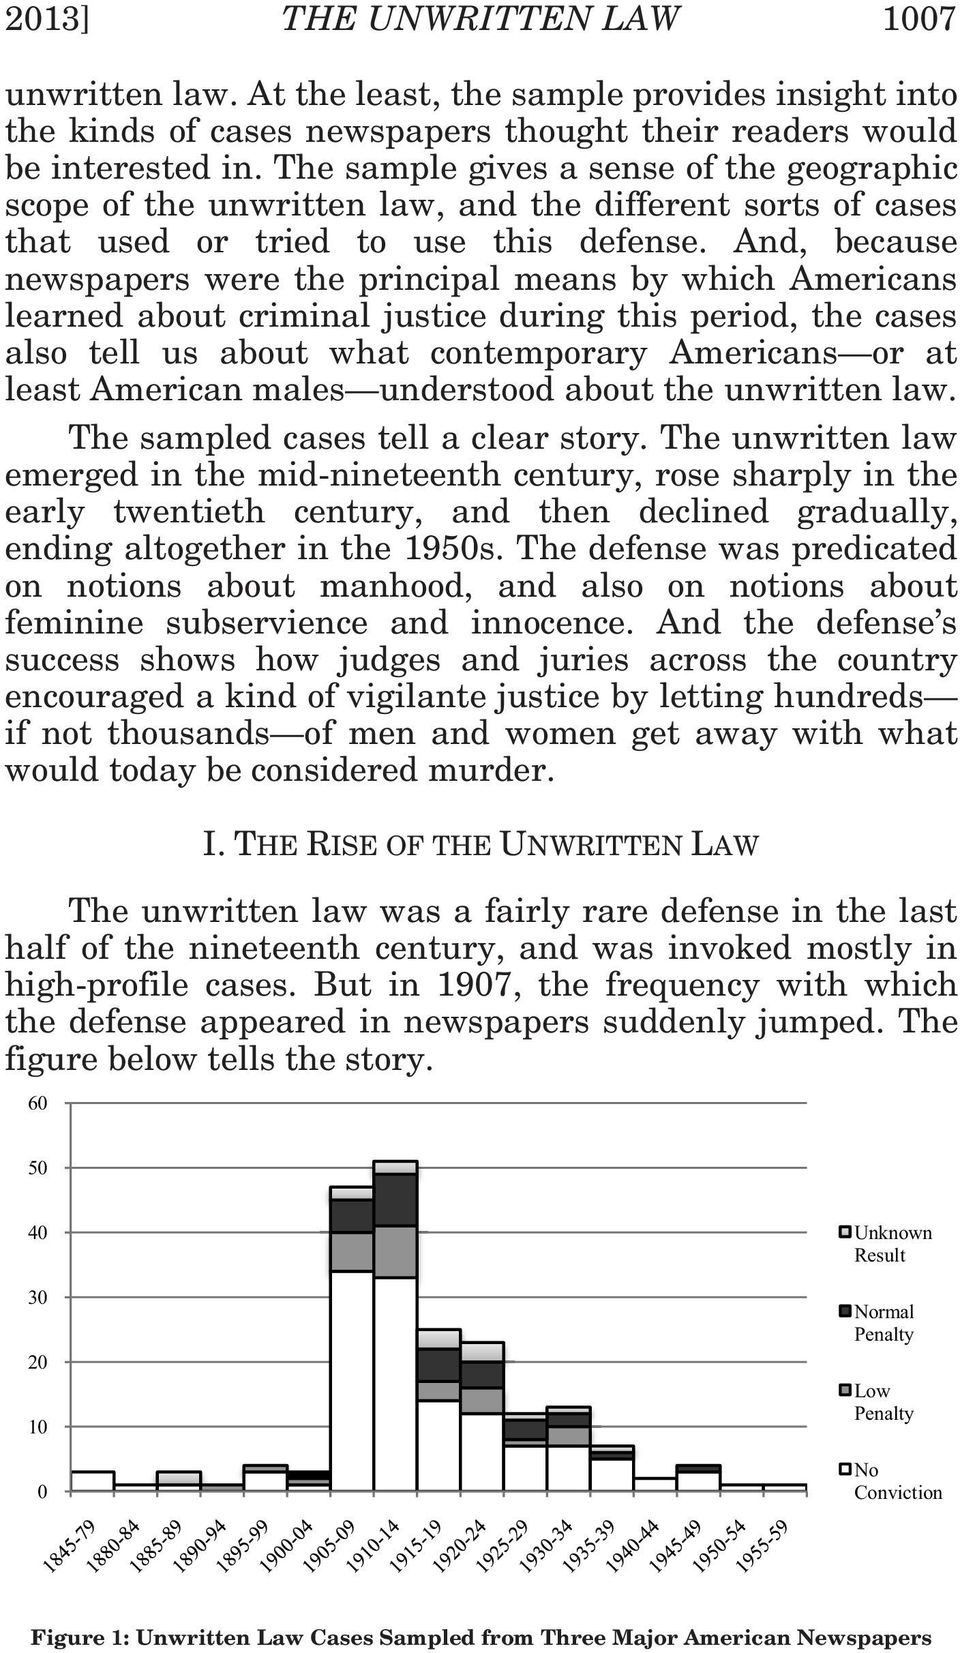 And, because newspapers were the principal means by which Americans learned about criminal justice during this period, the cases also tell us about what contemporary Americans or at least American